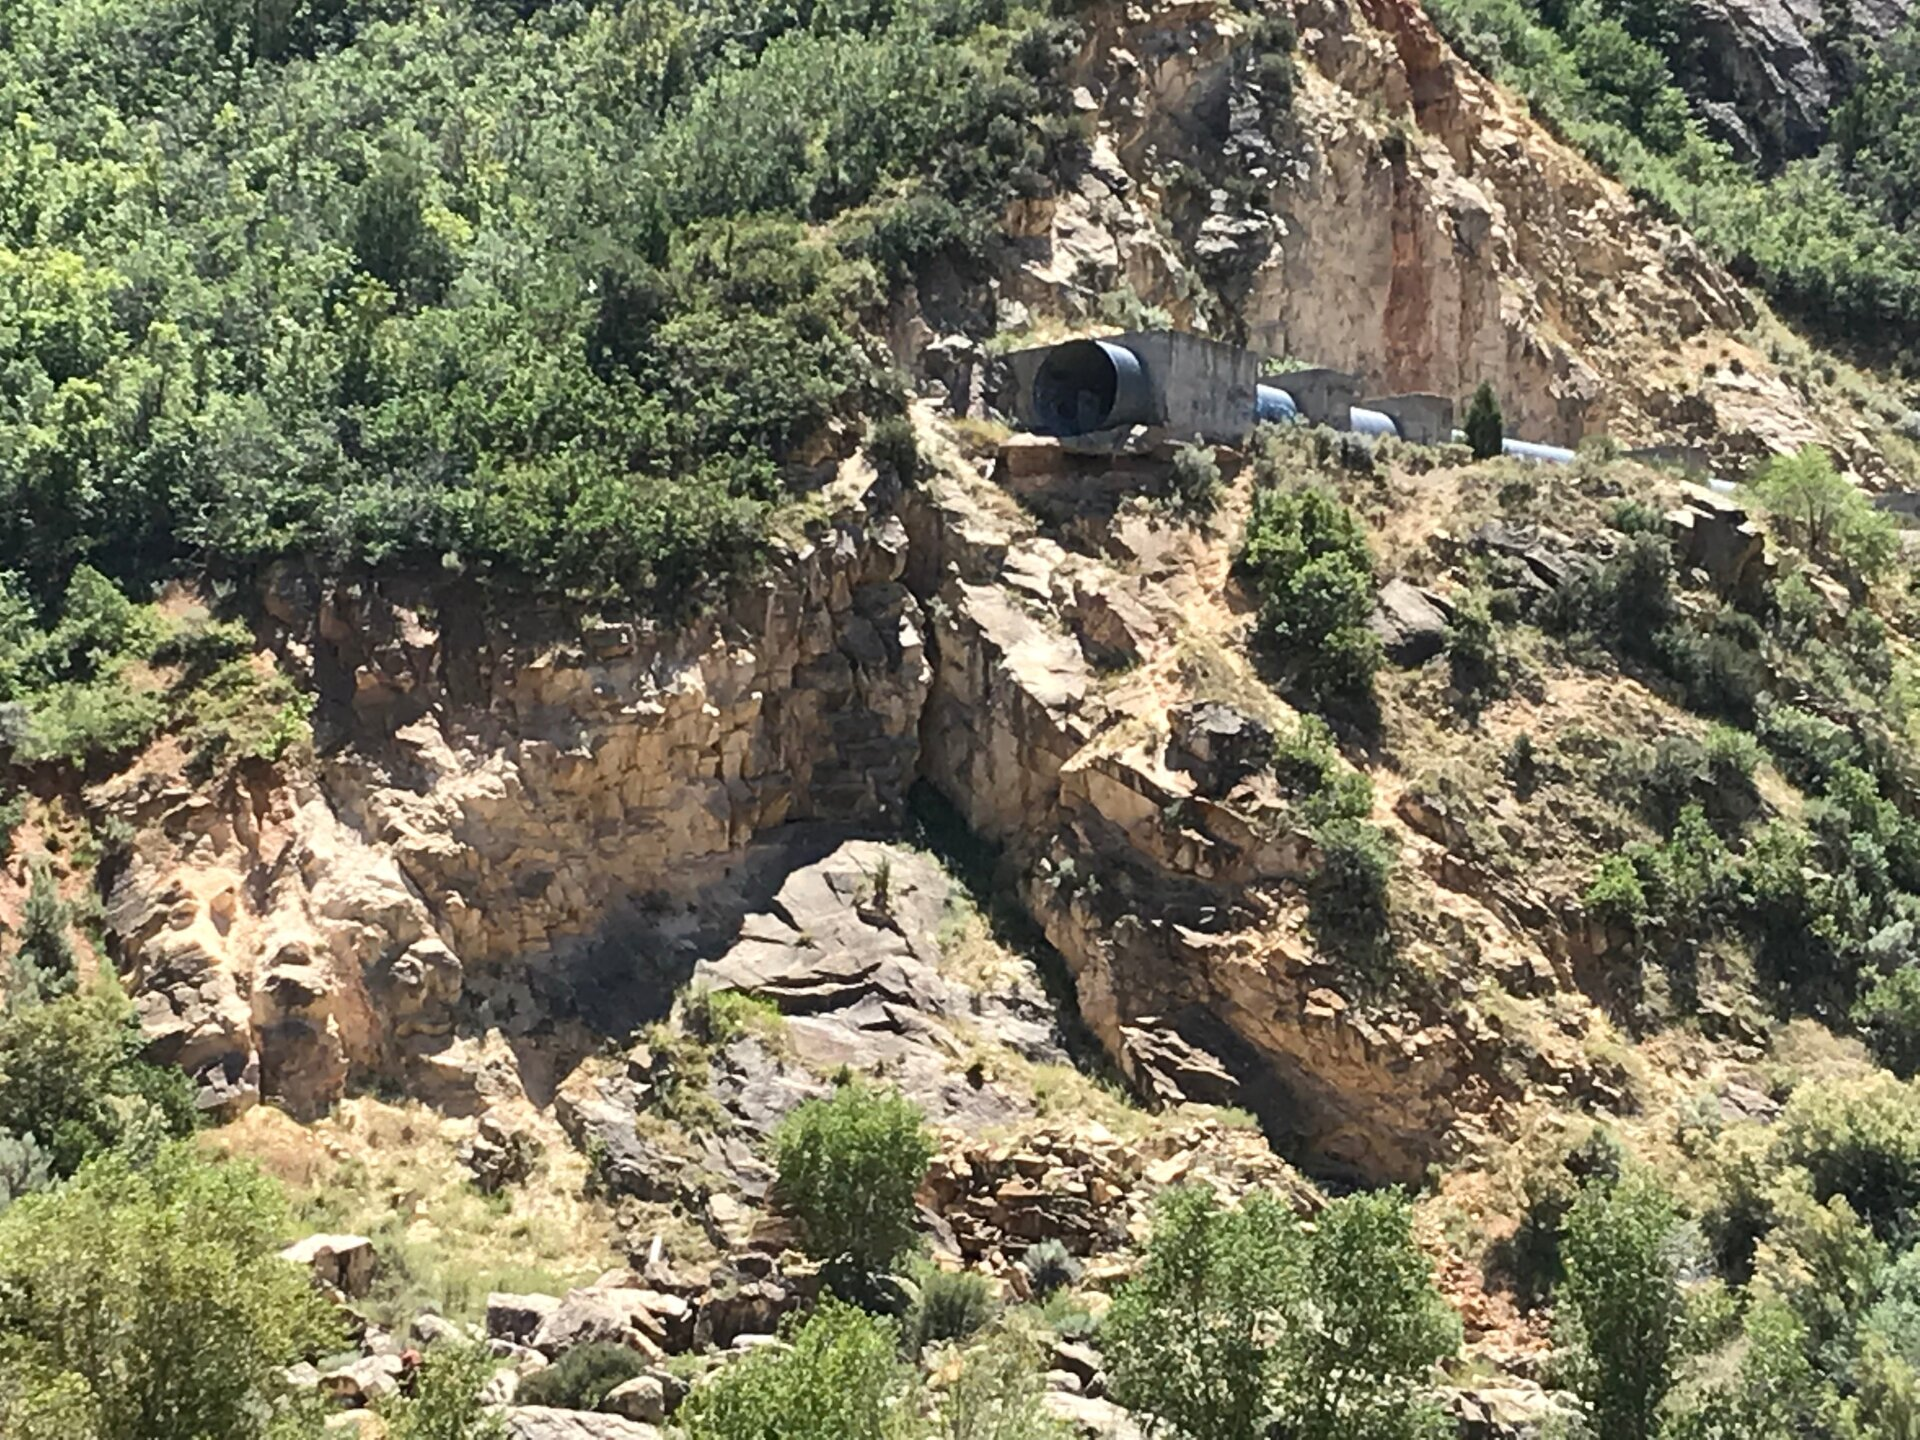 Photos: Man critically injured after falling 150 feet from drainage tunnel in Spanish Fork Canyon